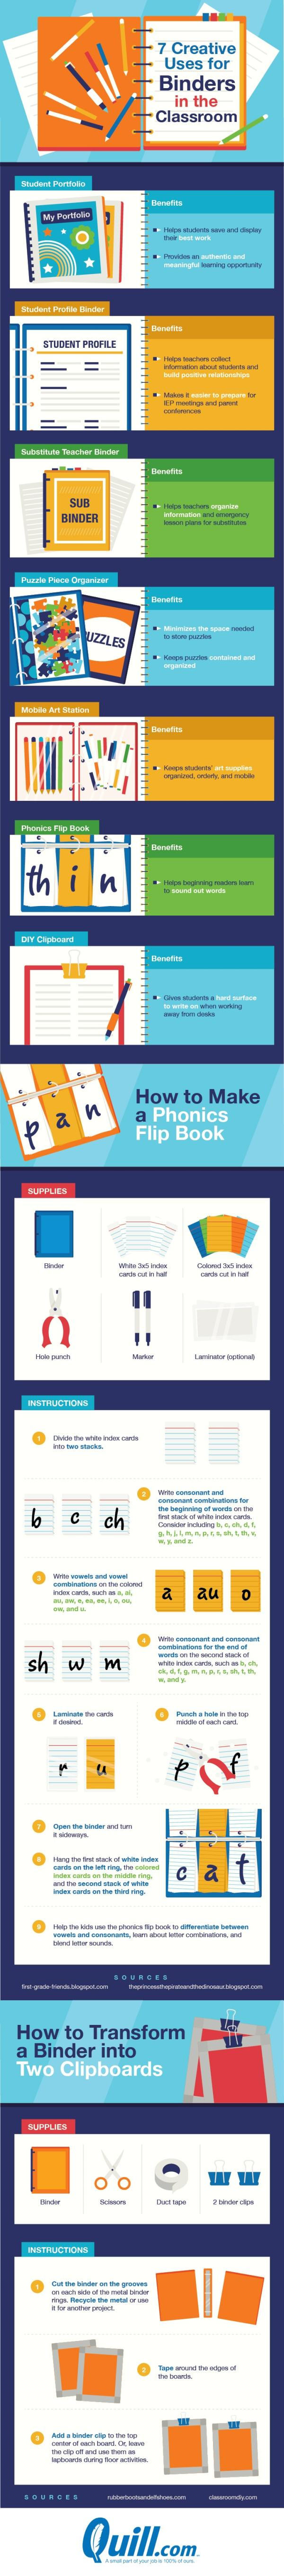 Creative uses for binders in the classroom